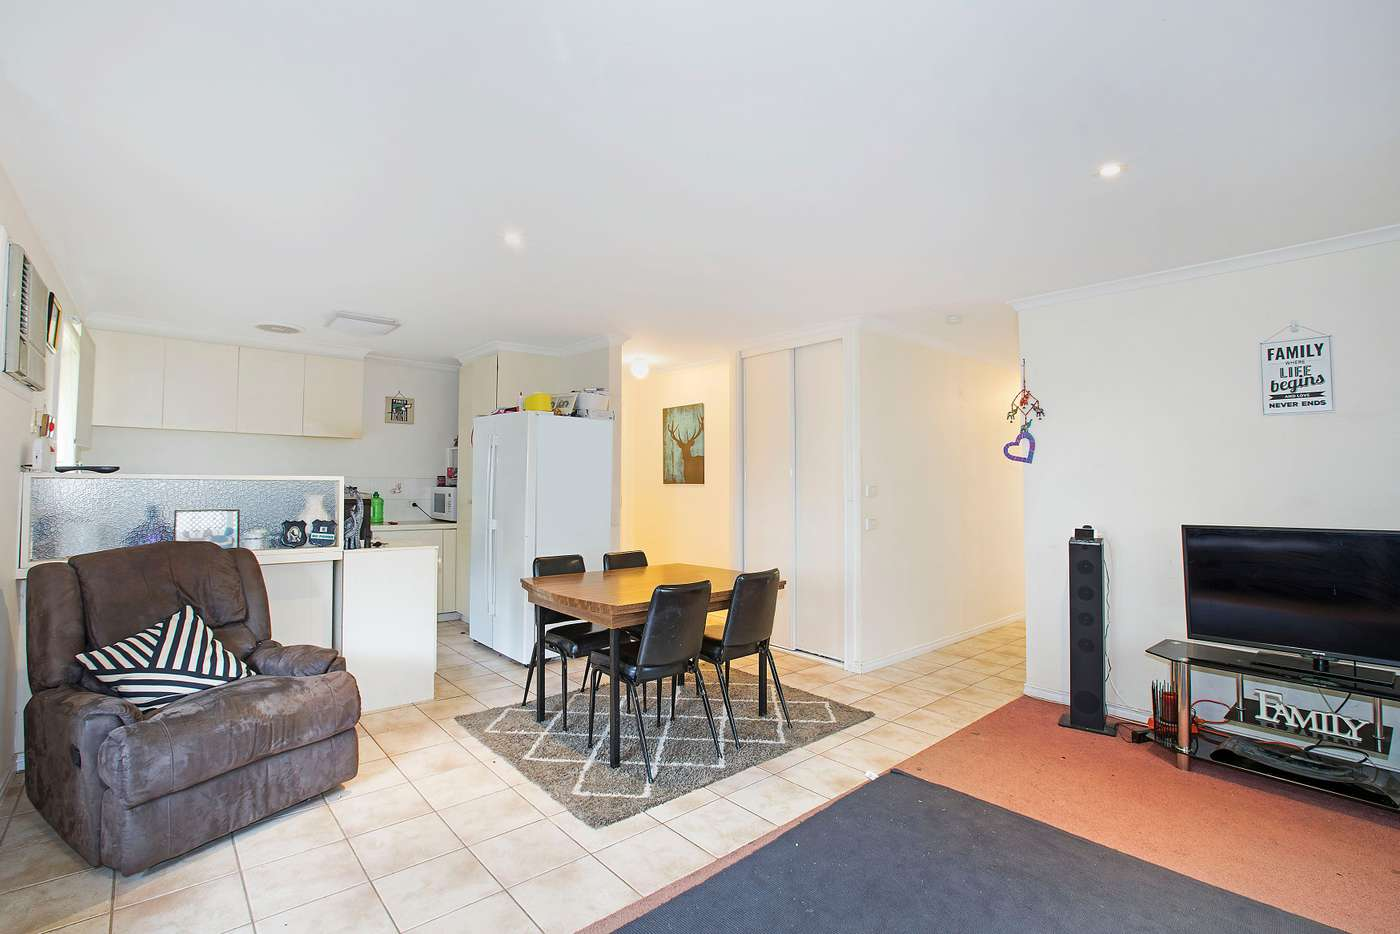 Sixth view of Homely house listing, Room 4/91 Fogarty Avenue, Highton VIC 3216